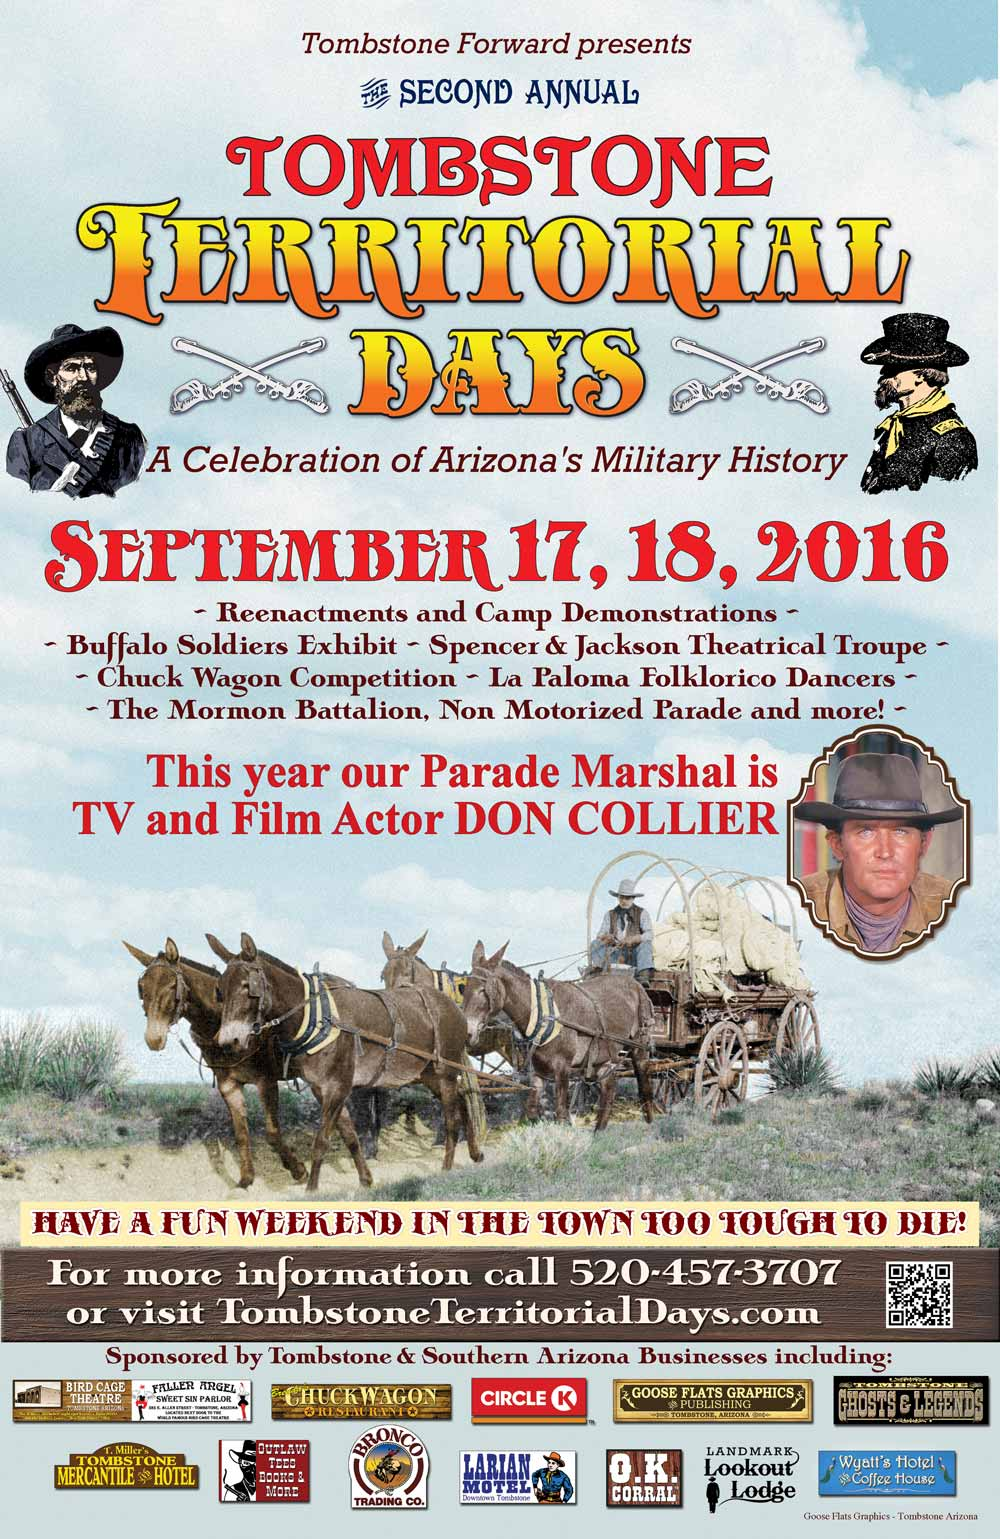 Tombstone Territorial Days 2016